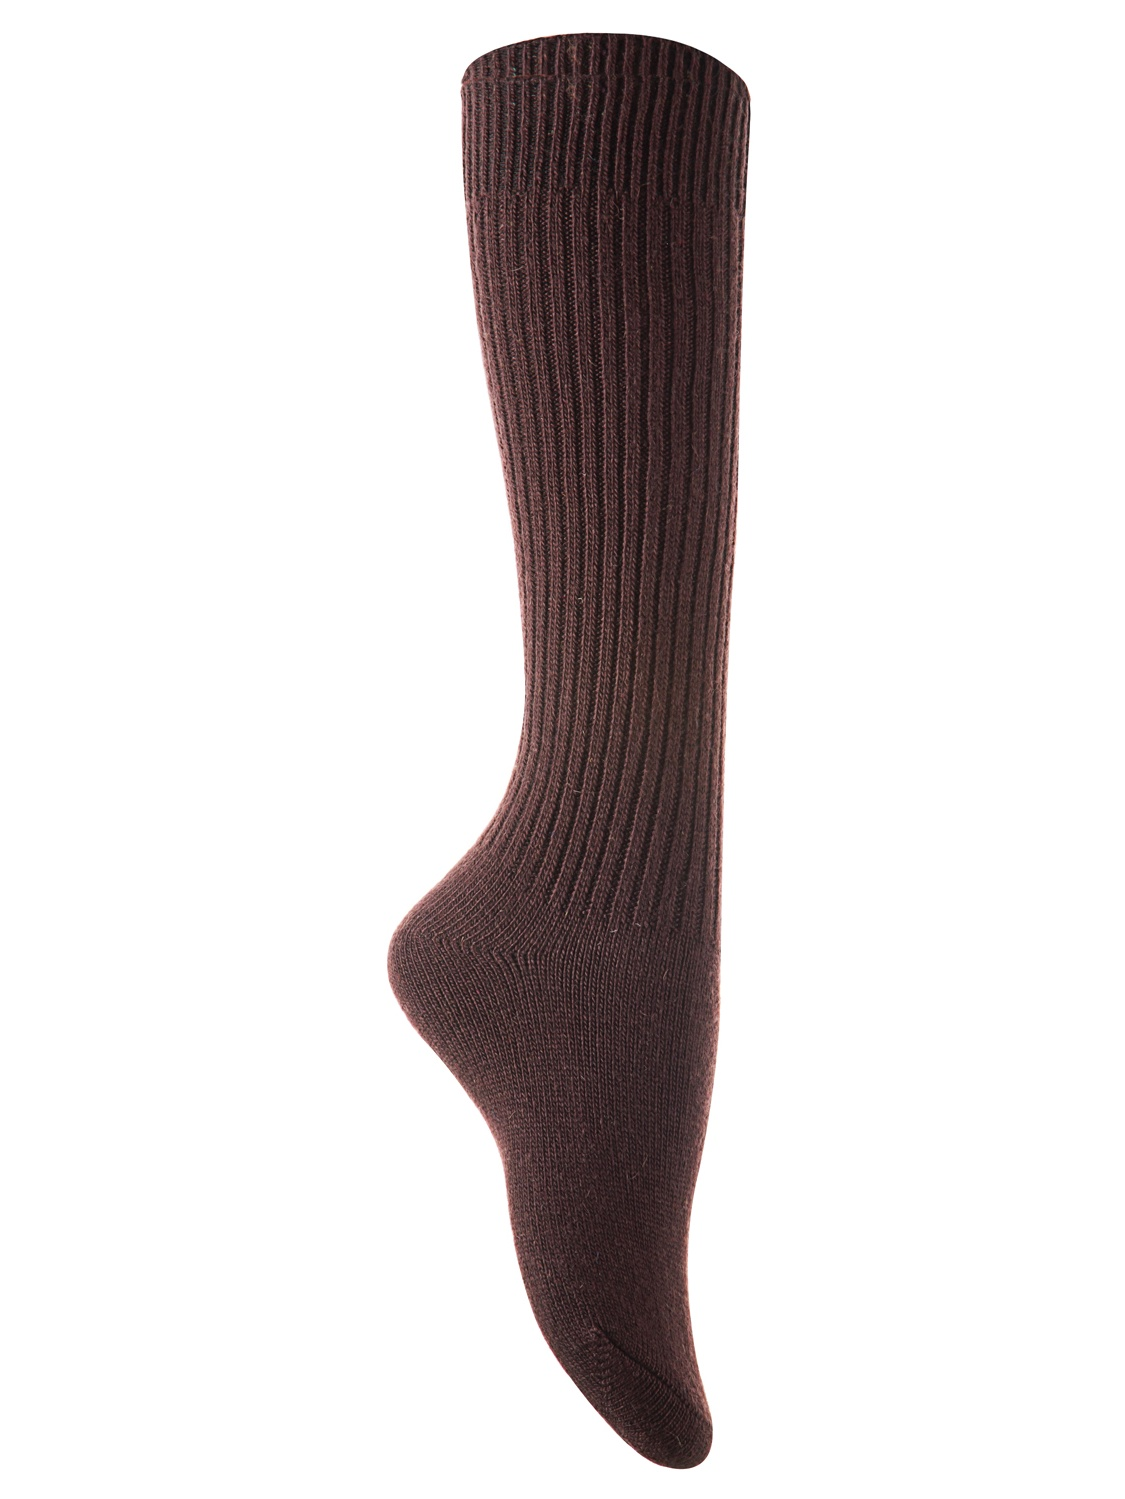 Lian Style Big Girl's 2 Pairs Knee-high Knitted Wool Socks Stripped FS05 Size L/XL(Yellow)